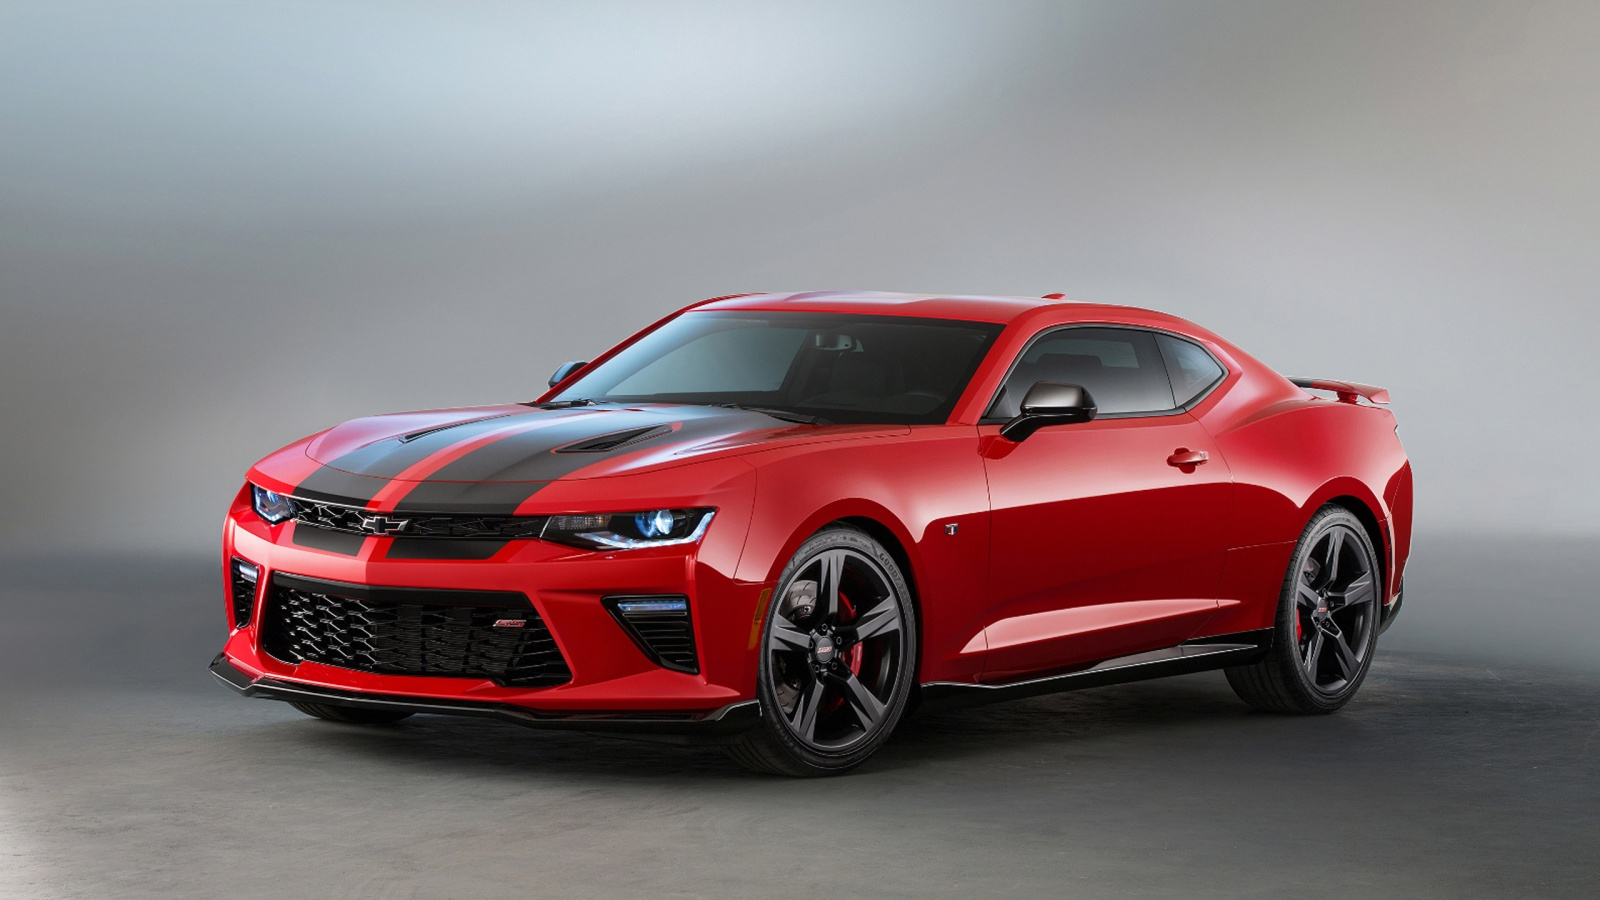 2016 Chevrolet Camaro SS Black Accent Package 1600x900